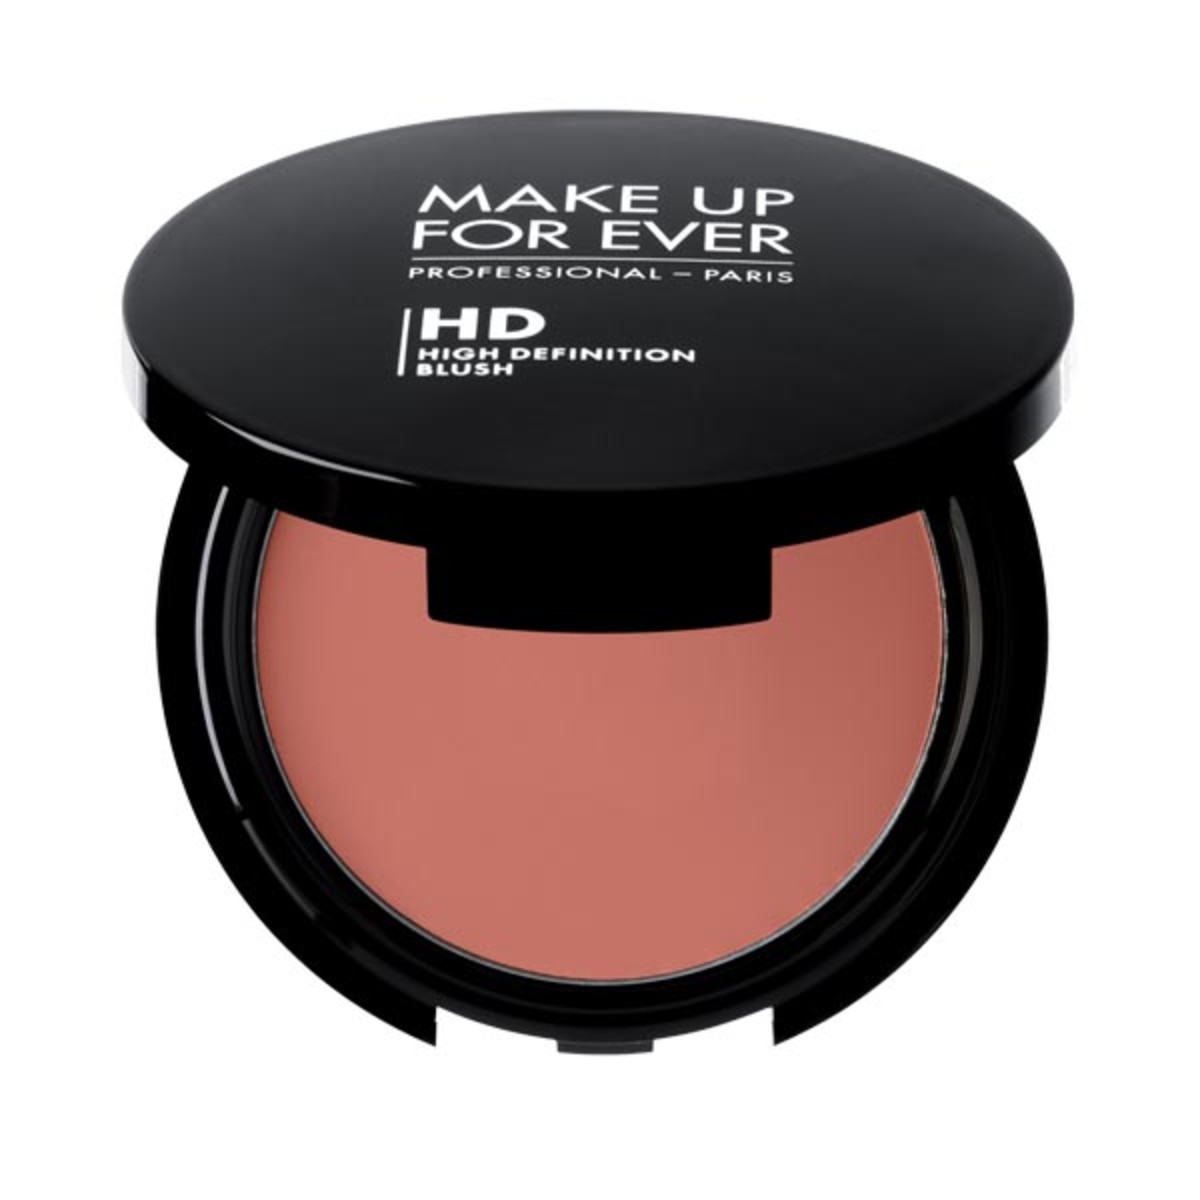 Make Up For Ever HD Blush in 220 Pink Sand